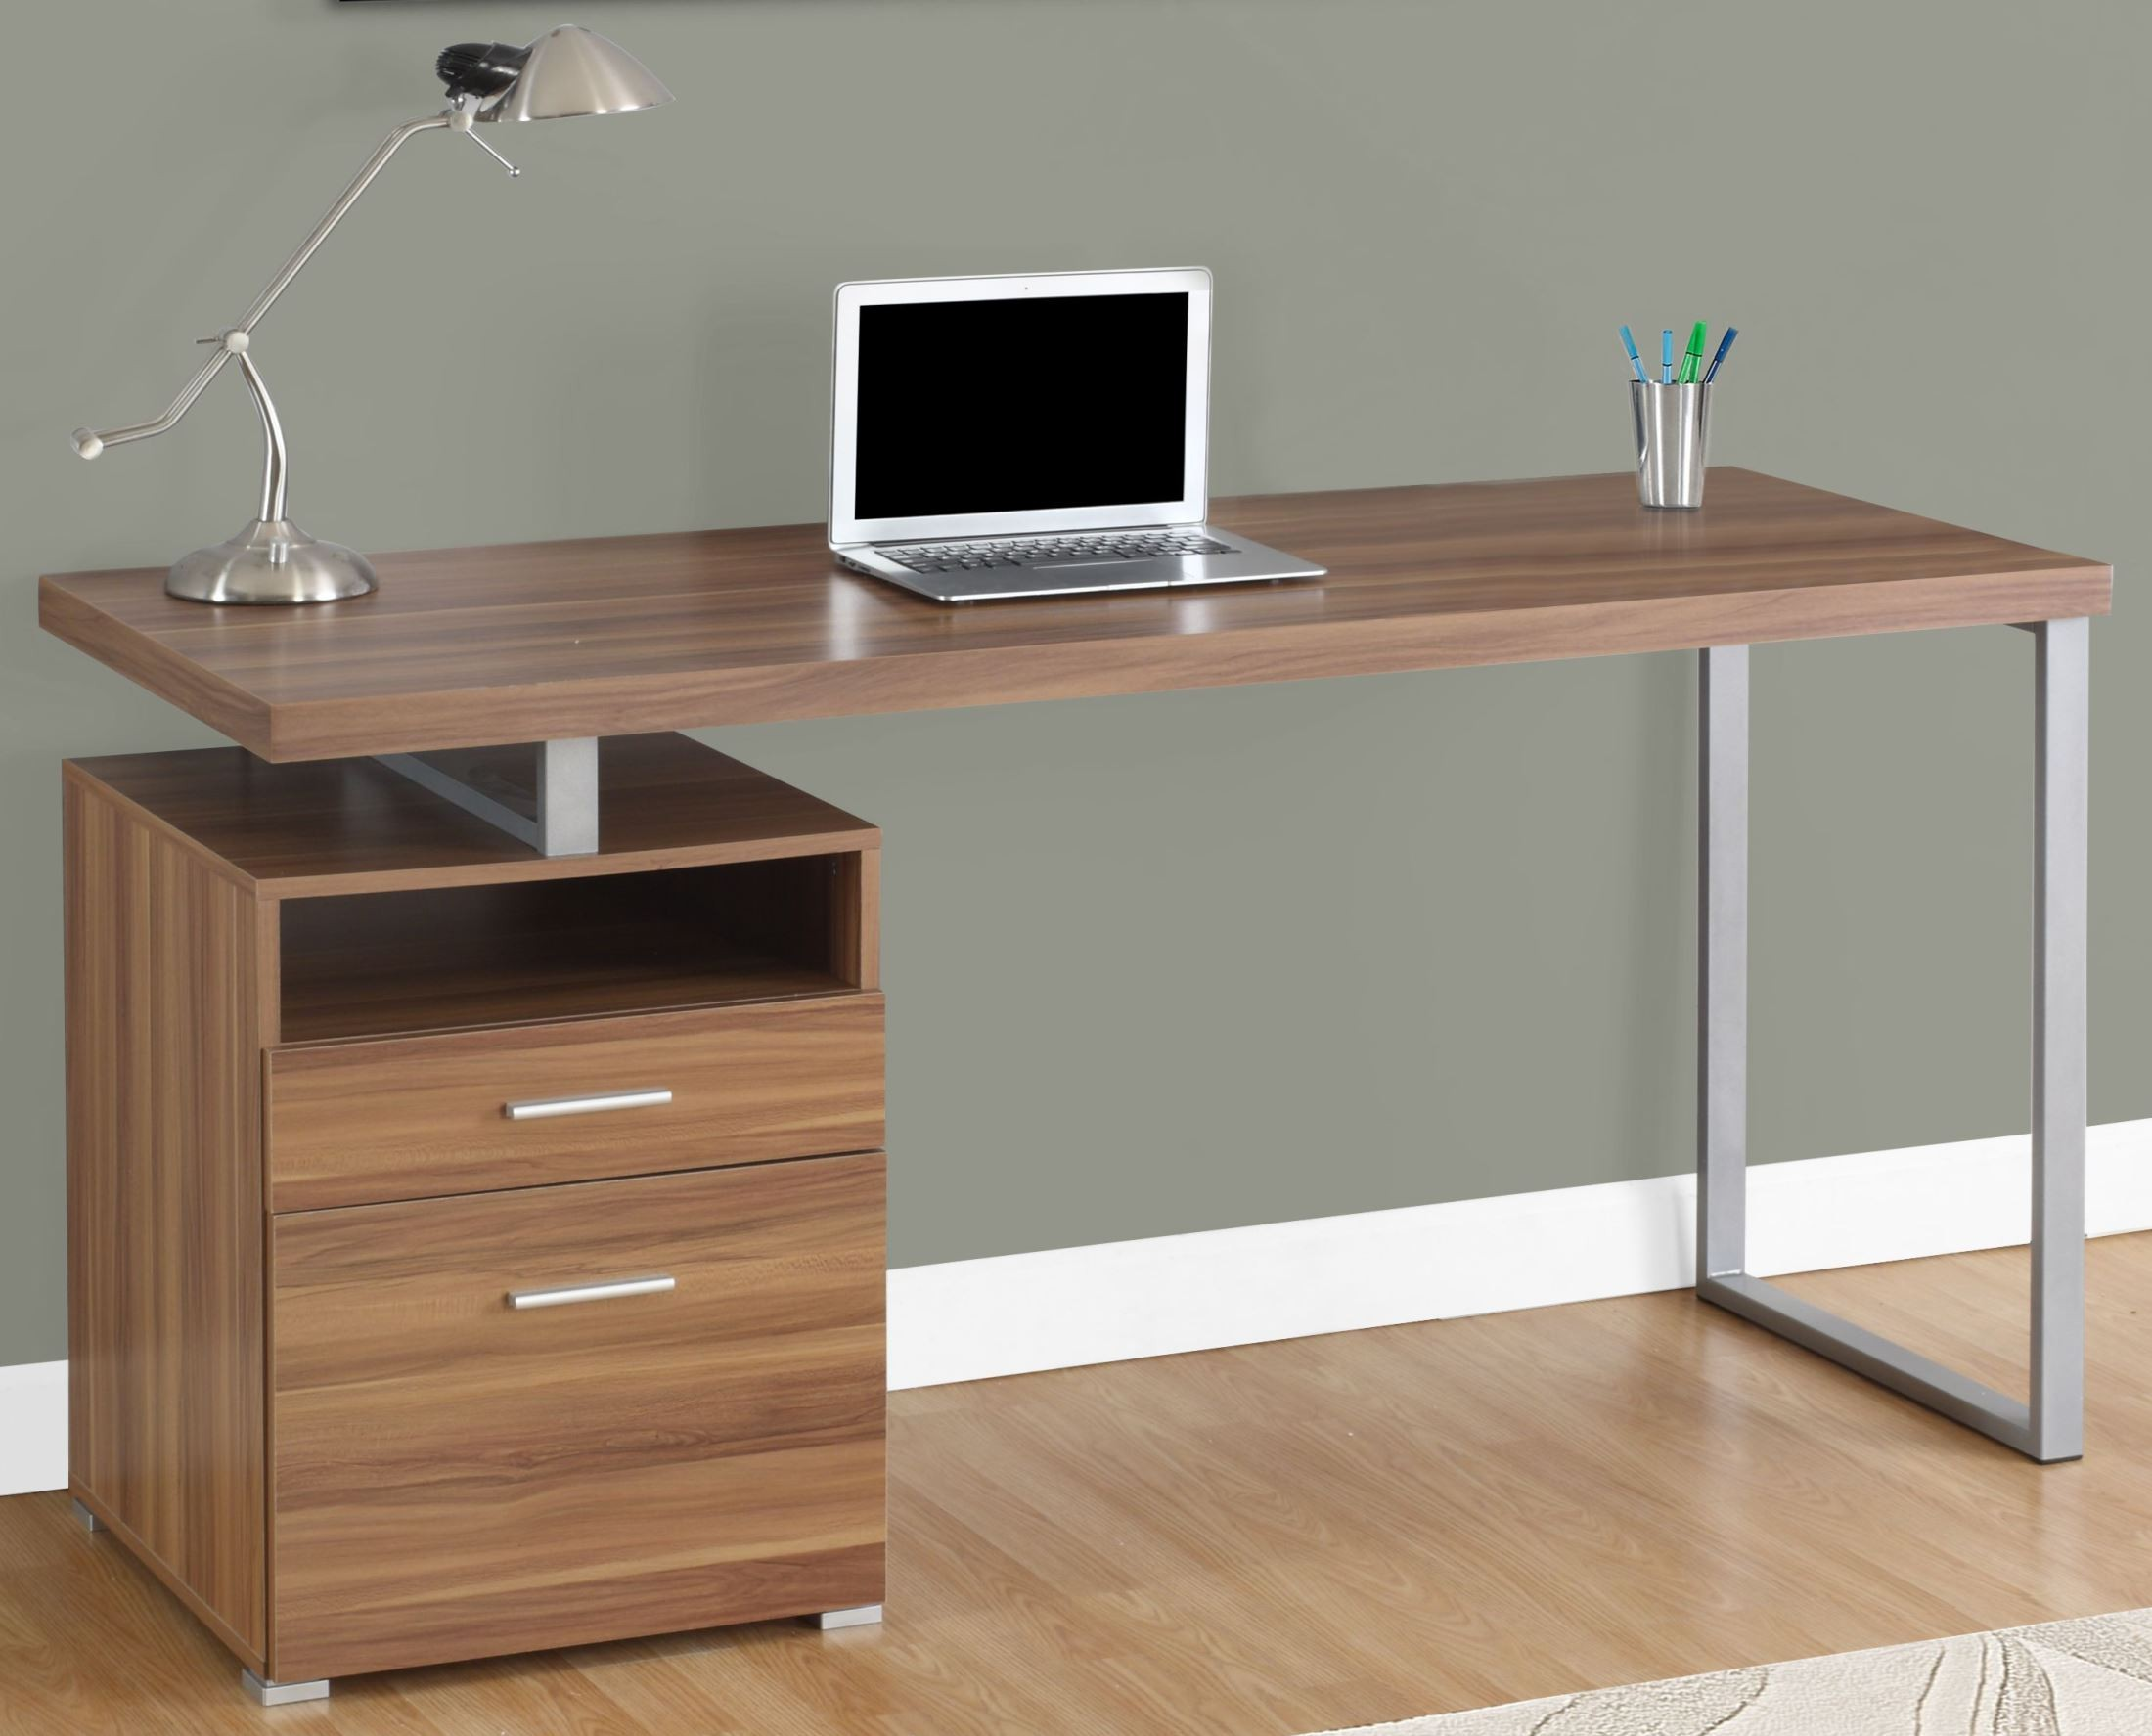 Walnut 60 Computer Desk from Monarch  Coleman Furniture